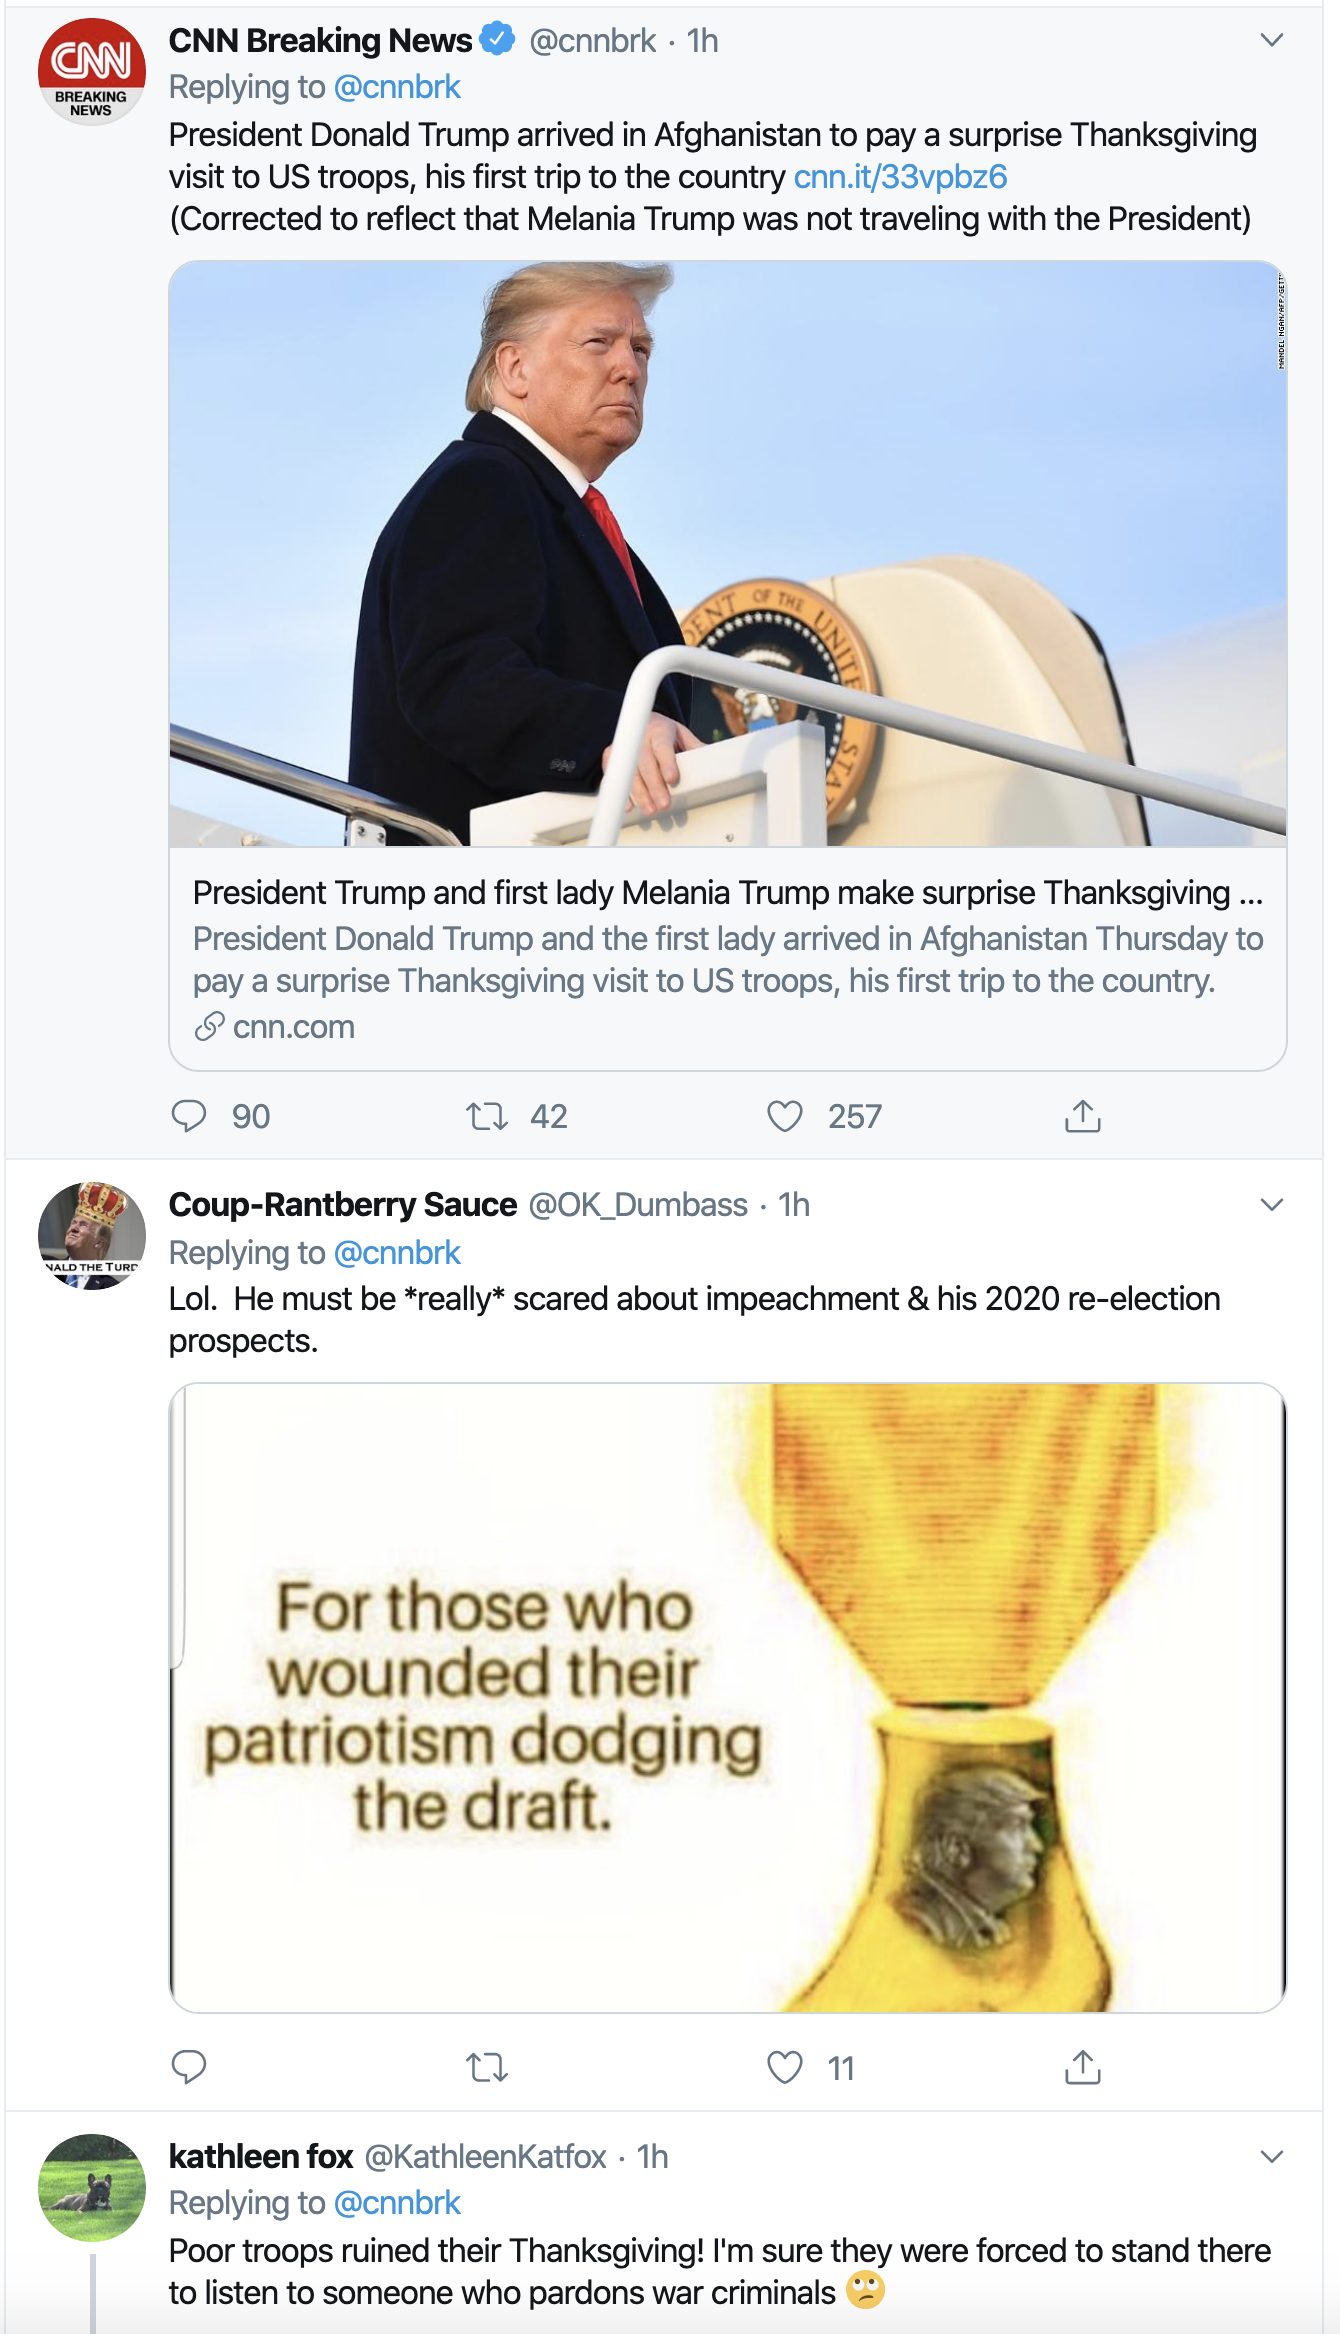 Screen-Shot-2019-11-28-at-3.12.12-PM Trump Gets Weird During Surprise Thanksgiving Visit To Afghanistan Economy Featured Military Top Stories War